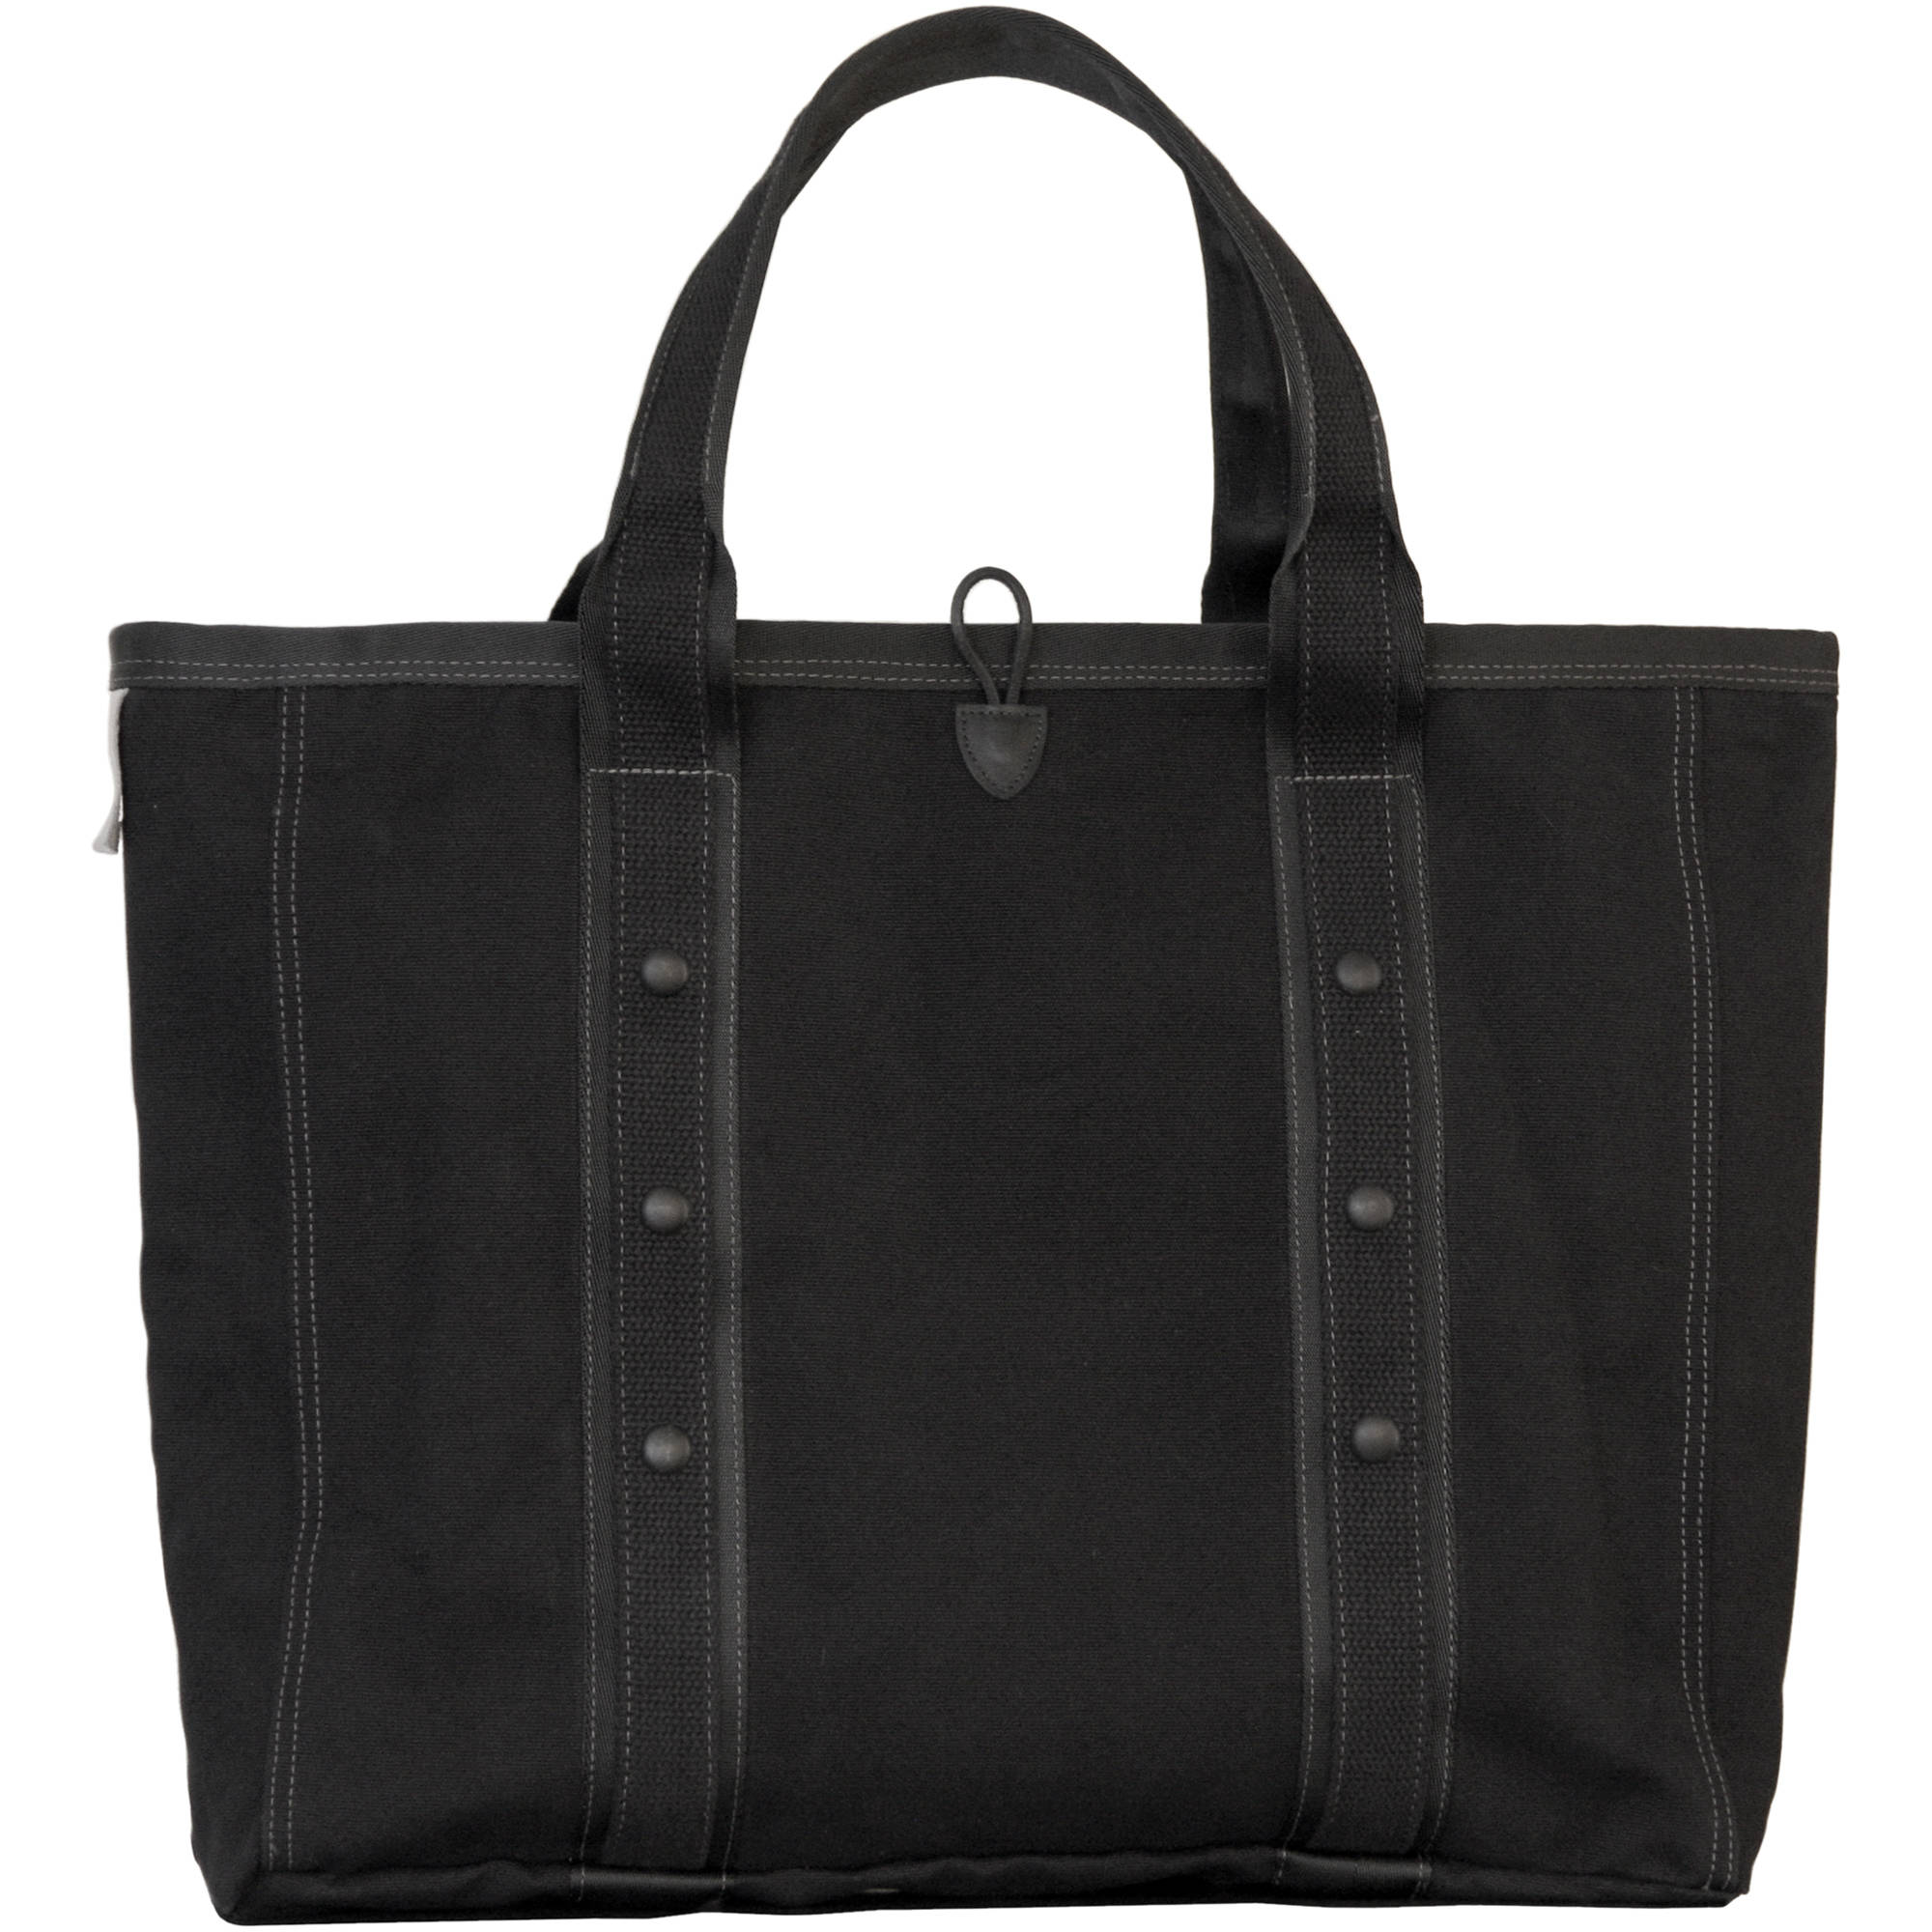 Black Label Bag Talbot's Tote